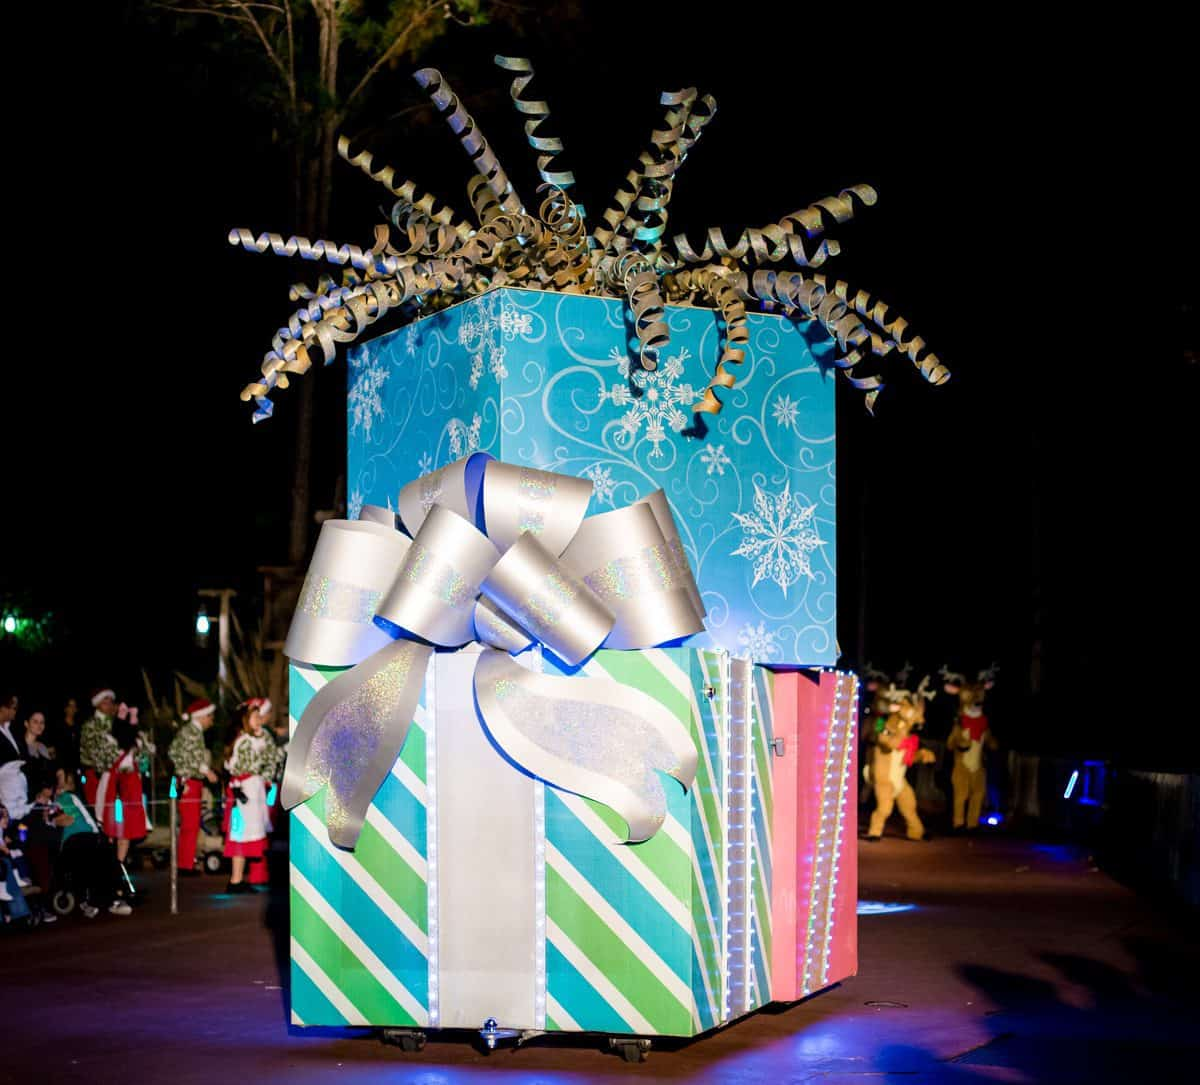 Best Christmas Events In Orlando, Florida